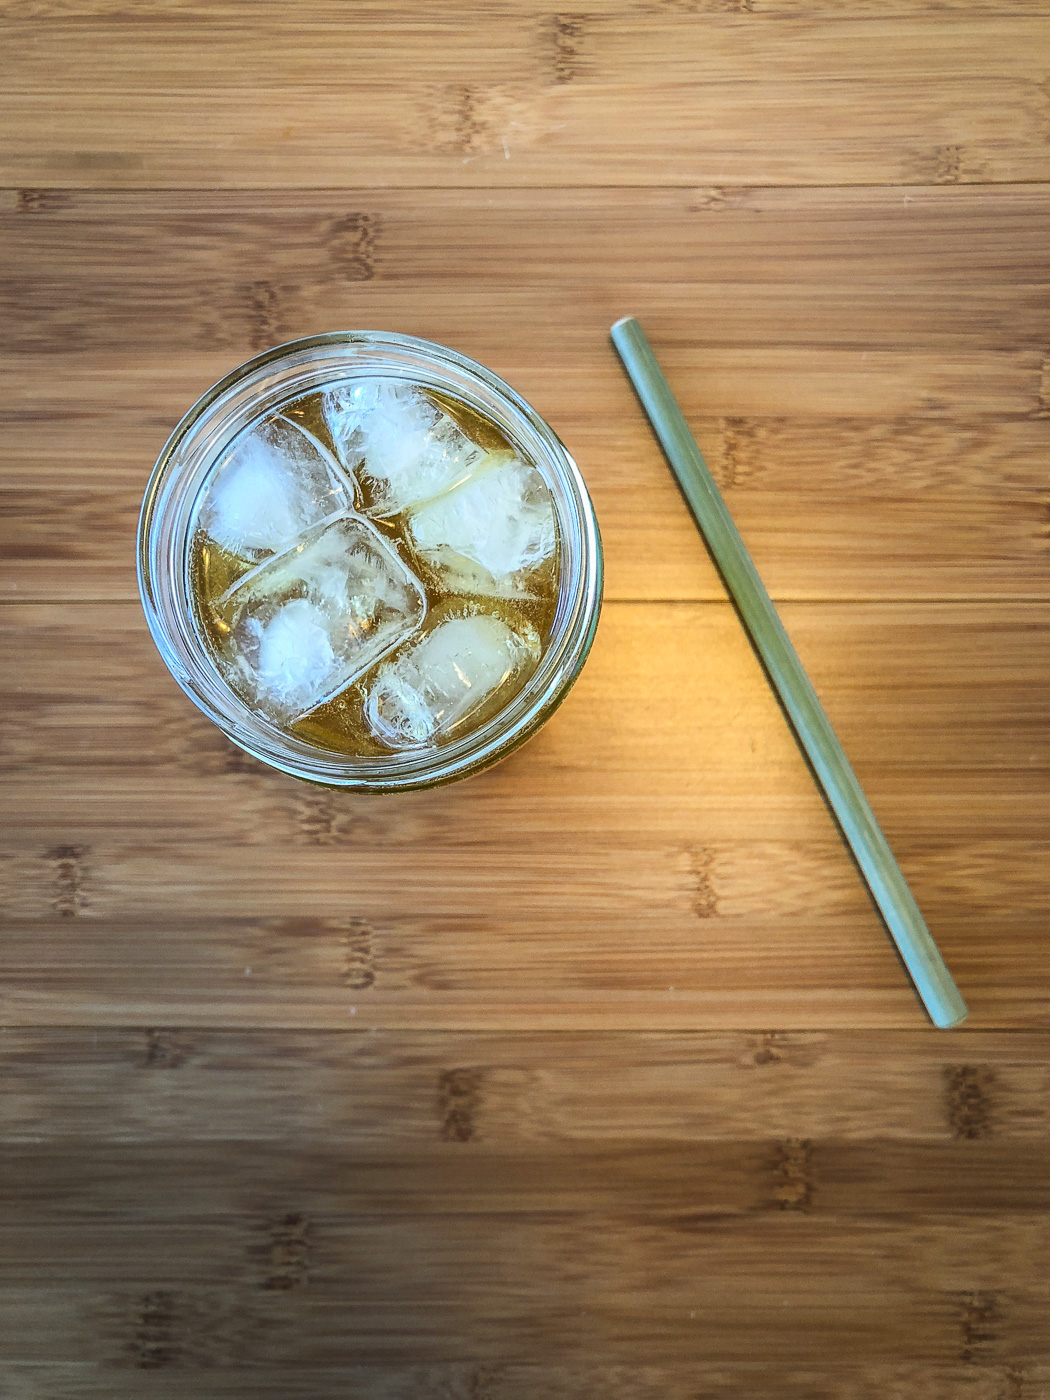 Top down photo of glass filled with iced tea and ice next to a bamboo straw